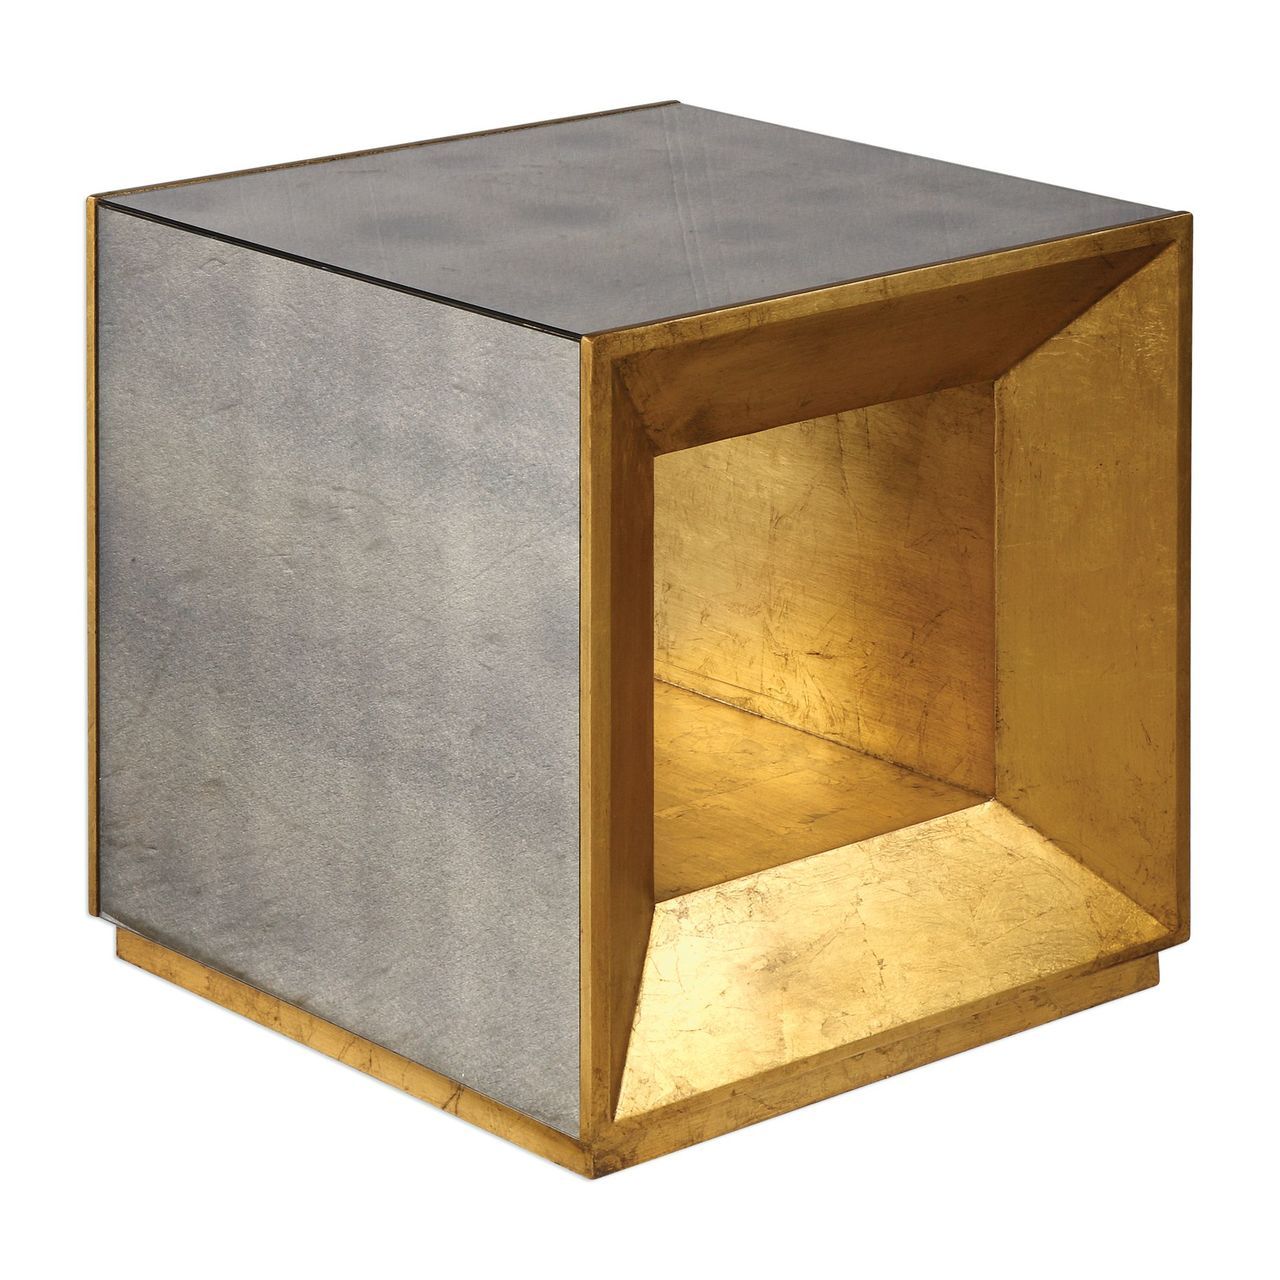 Flaire Cube Table - 24763